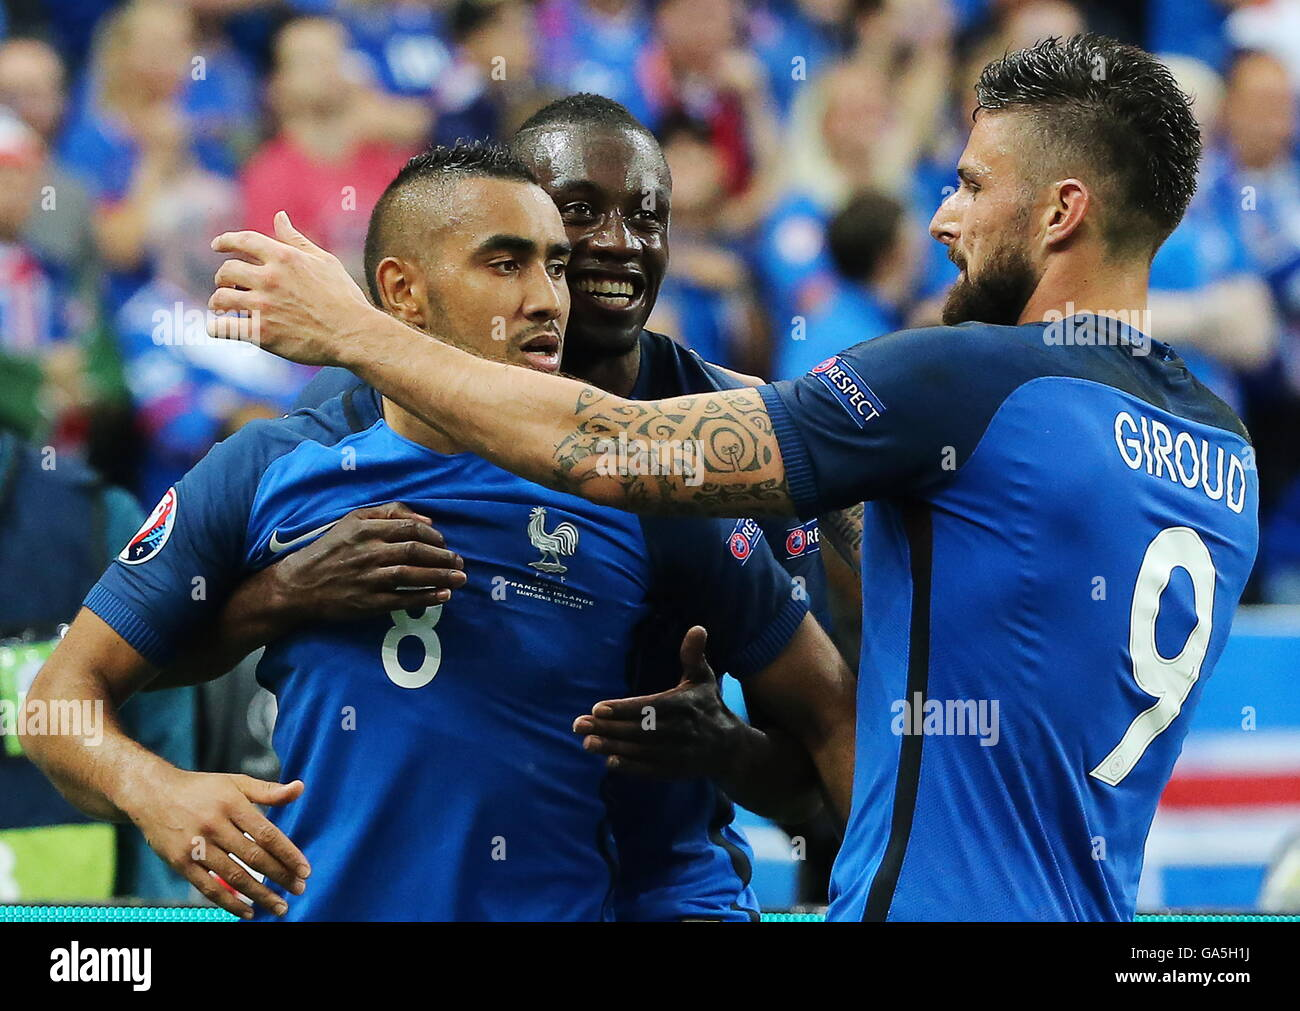 Saint Denis France 3rd July 2016 France s Dimitri Payet